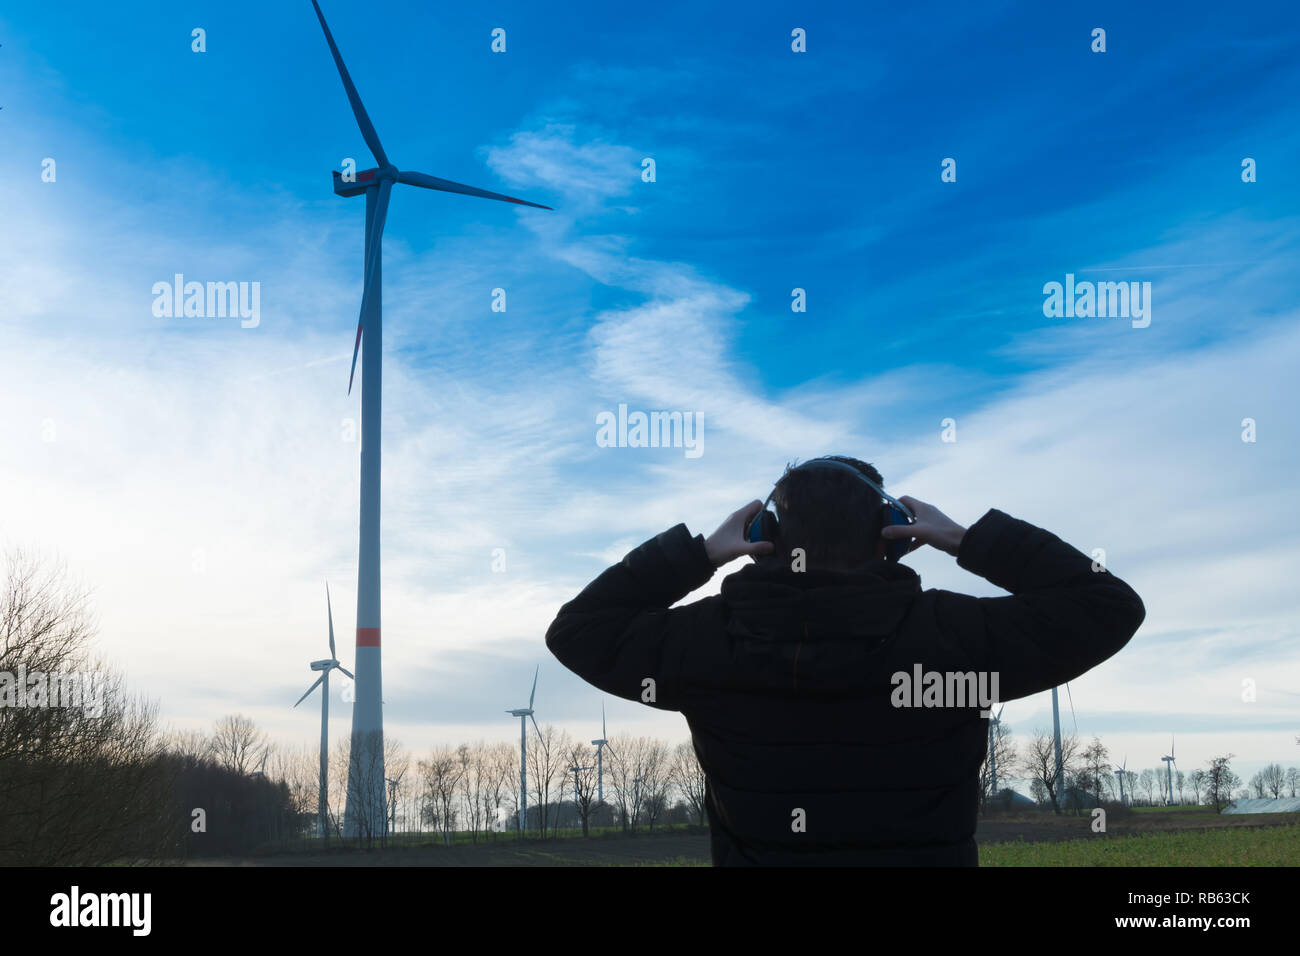 Man infront of a wind farm uses noise protector to reduce the noise of the wind turbine - Stock Image